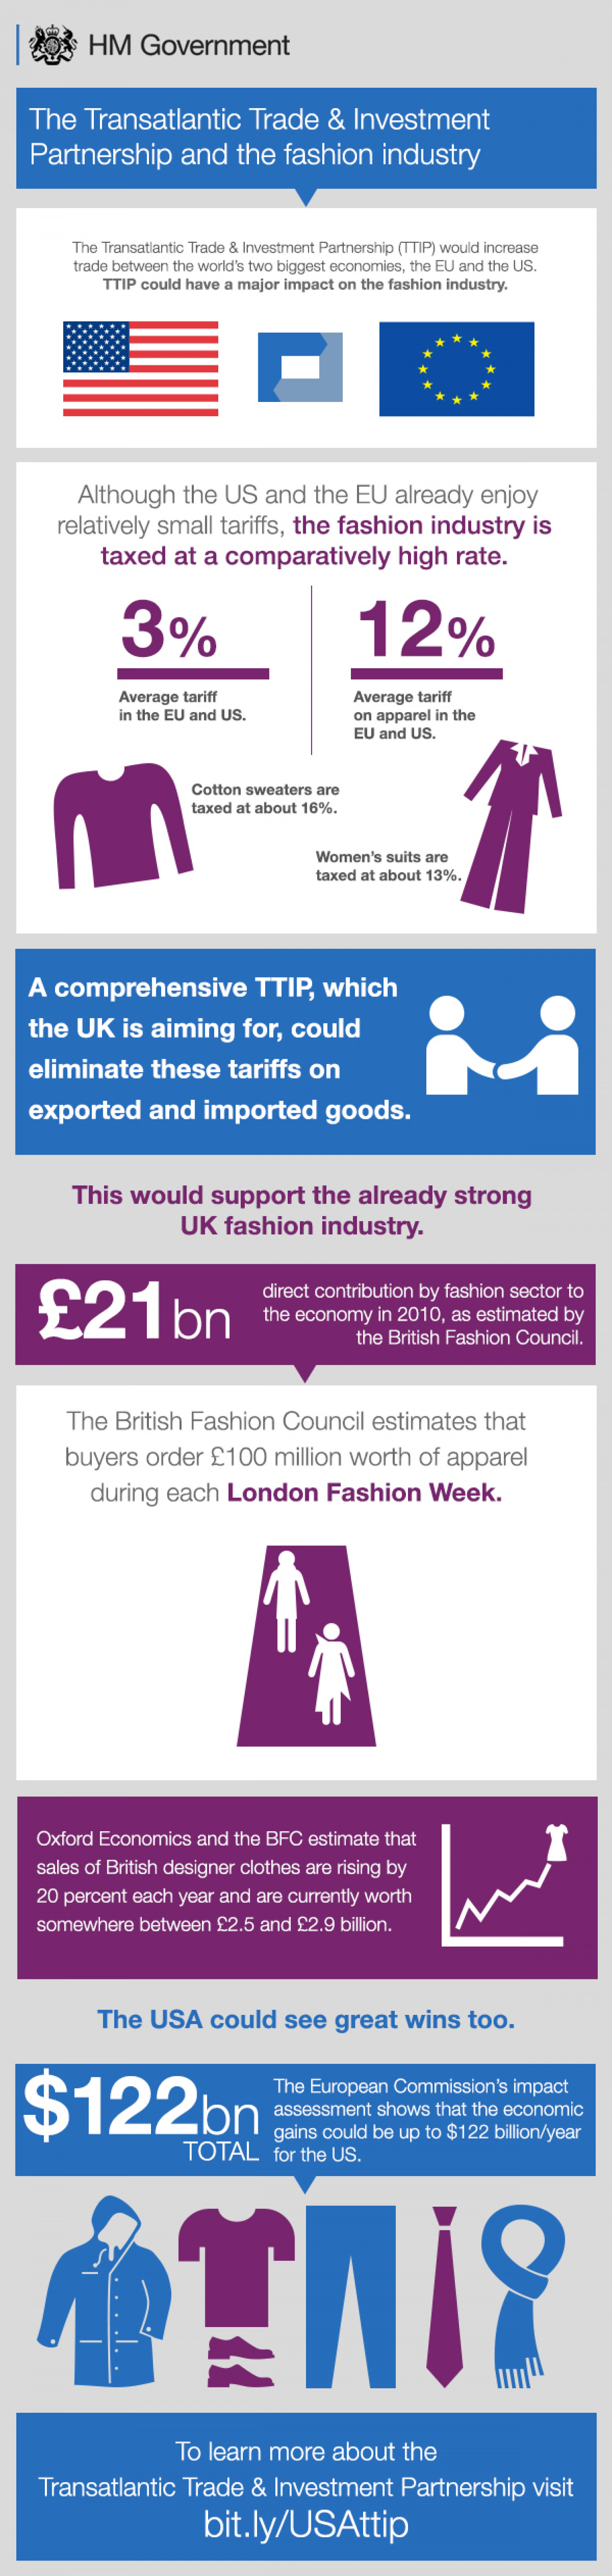 The Transatlantic Trade & Investment Partnership and the fashion industry Infographic